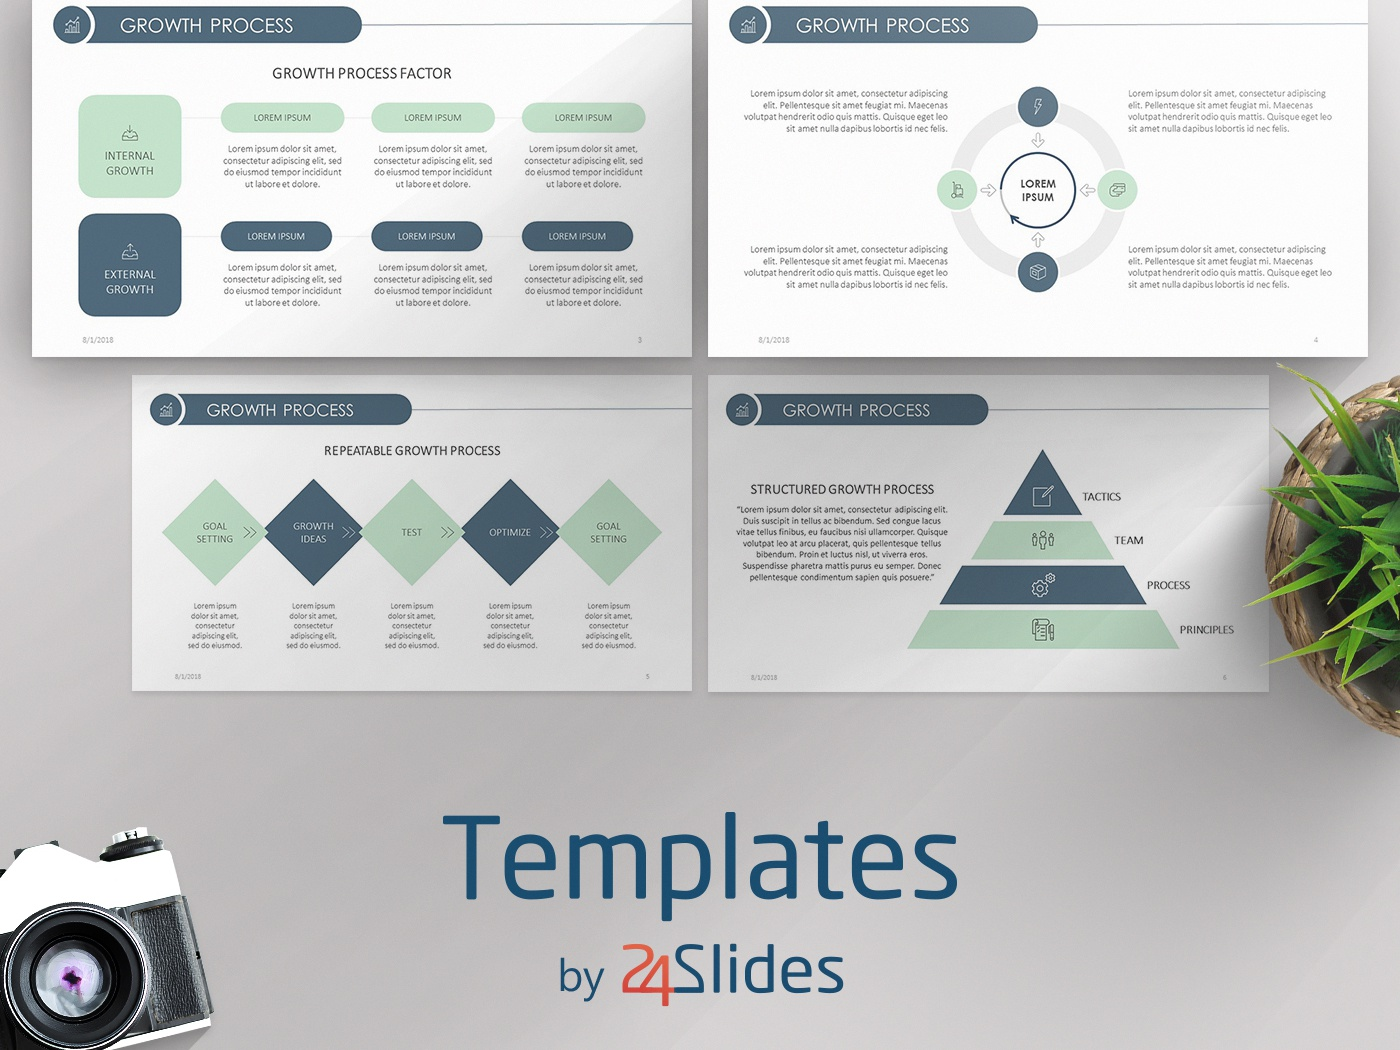 Growth Process Presentation Template Free Download By 24slides